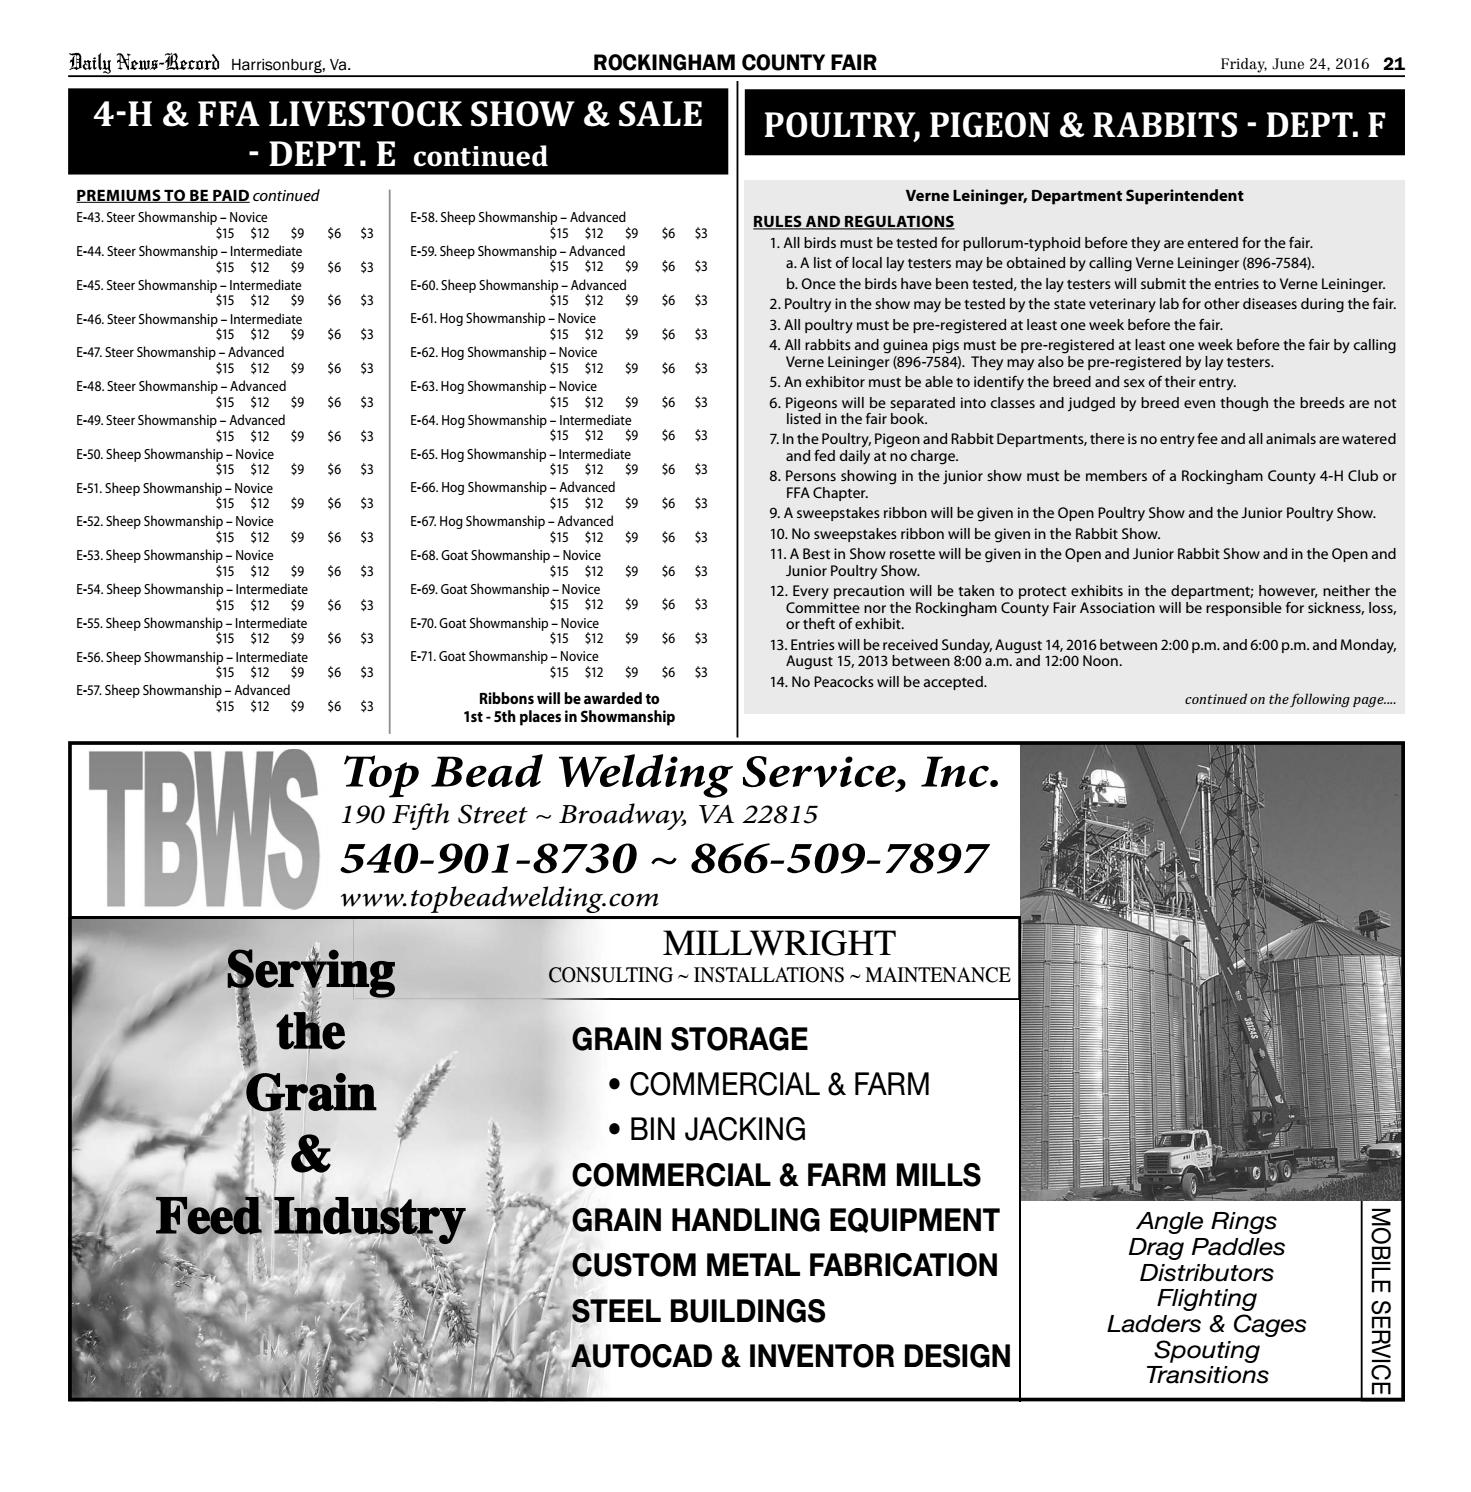 Rockingham County Fair Catalogue 2016 by Daily News-Record - issuu